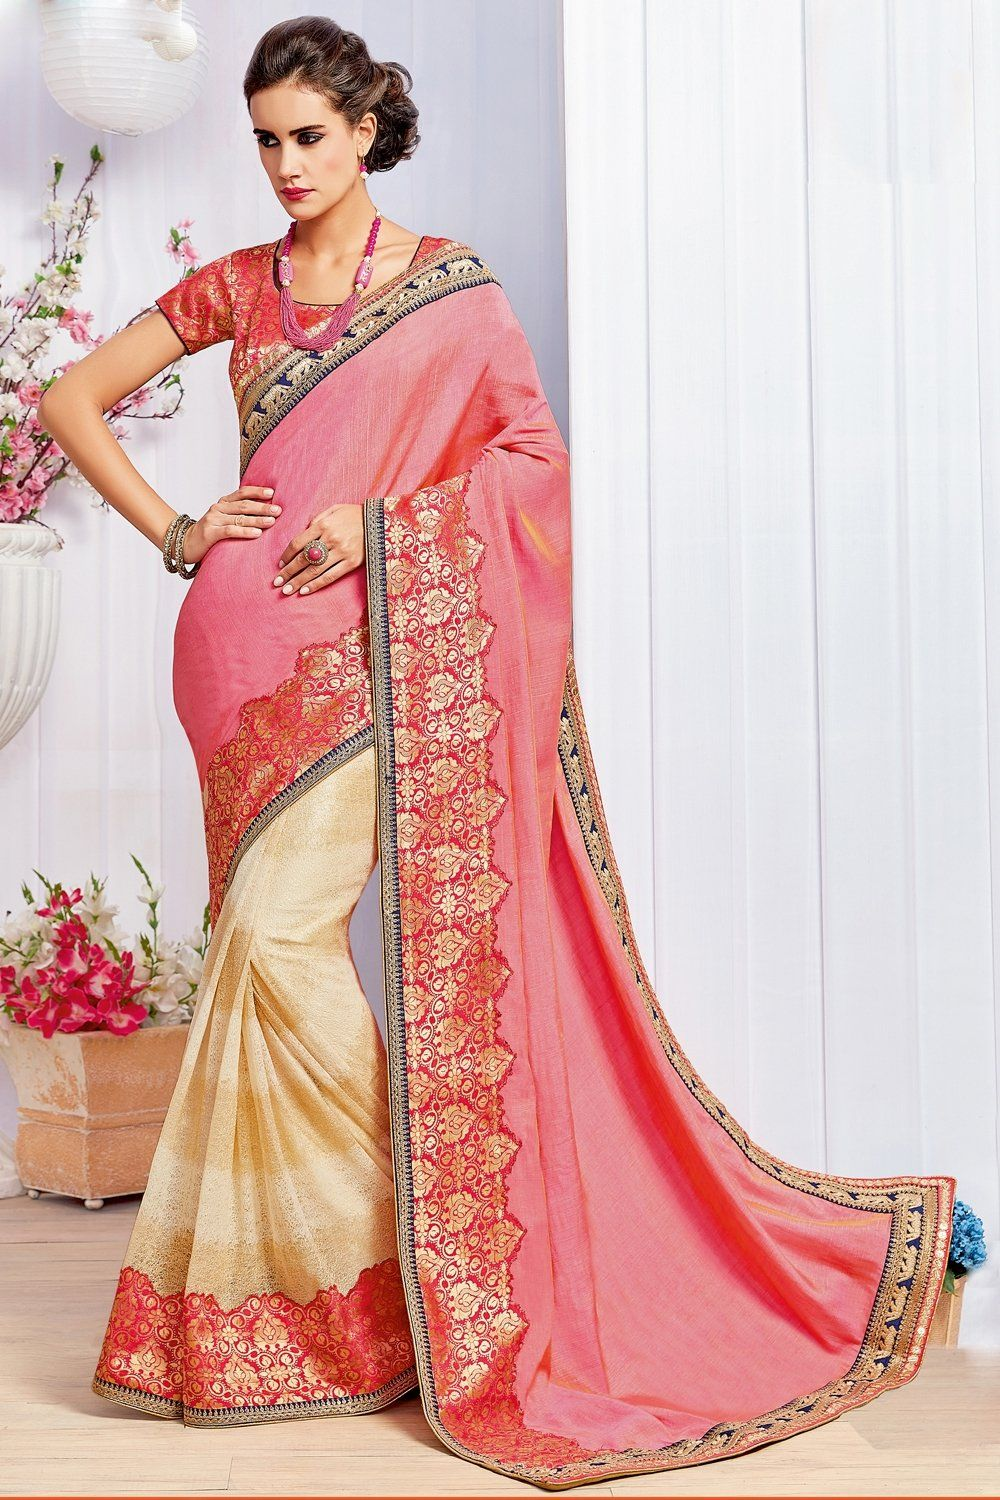 b08c0018d78564 Buy Pink and Cream Color Fancy Brocade Saree BY SURBHI FASHION Online at Low  prices in India on Winsant, India fastest online shopping website. Shop  Online ...